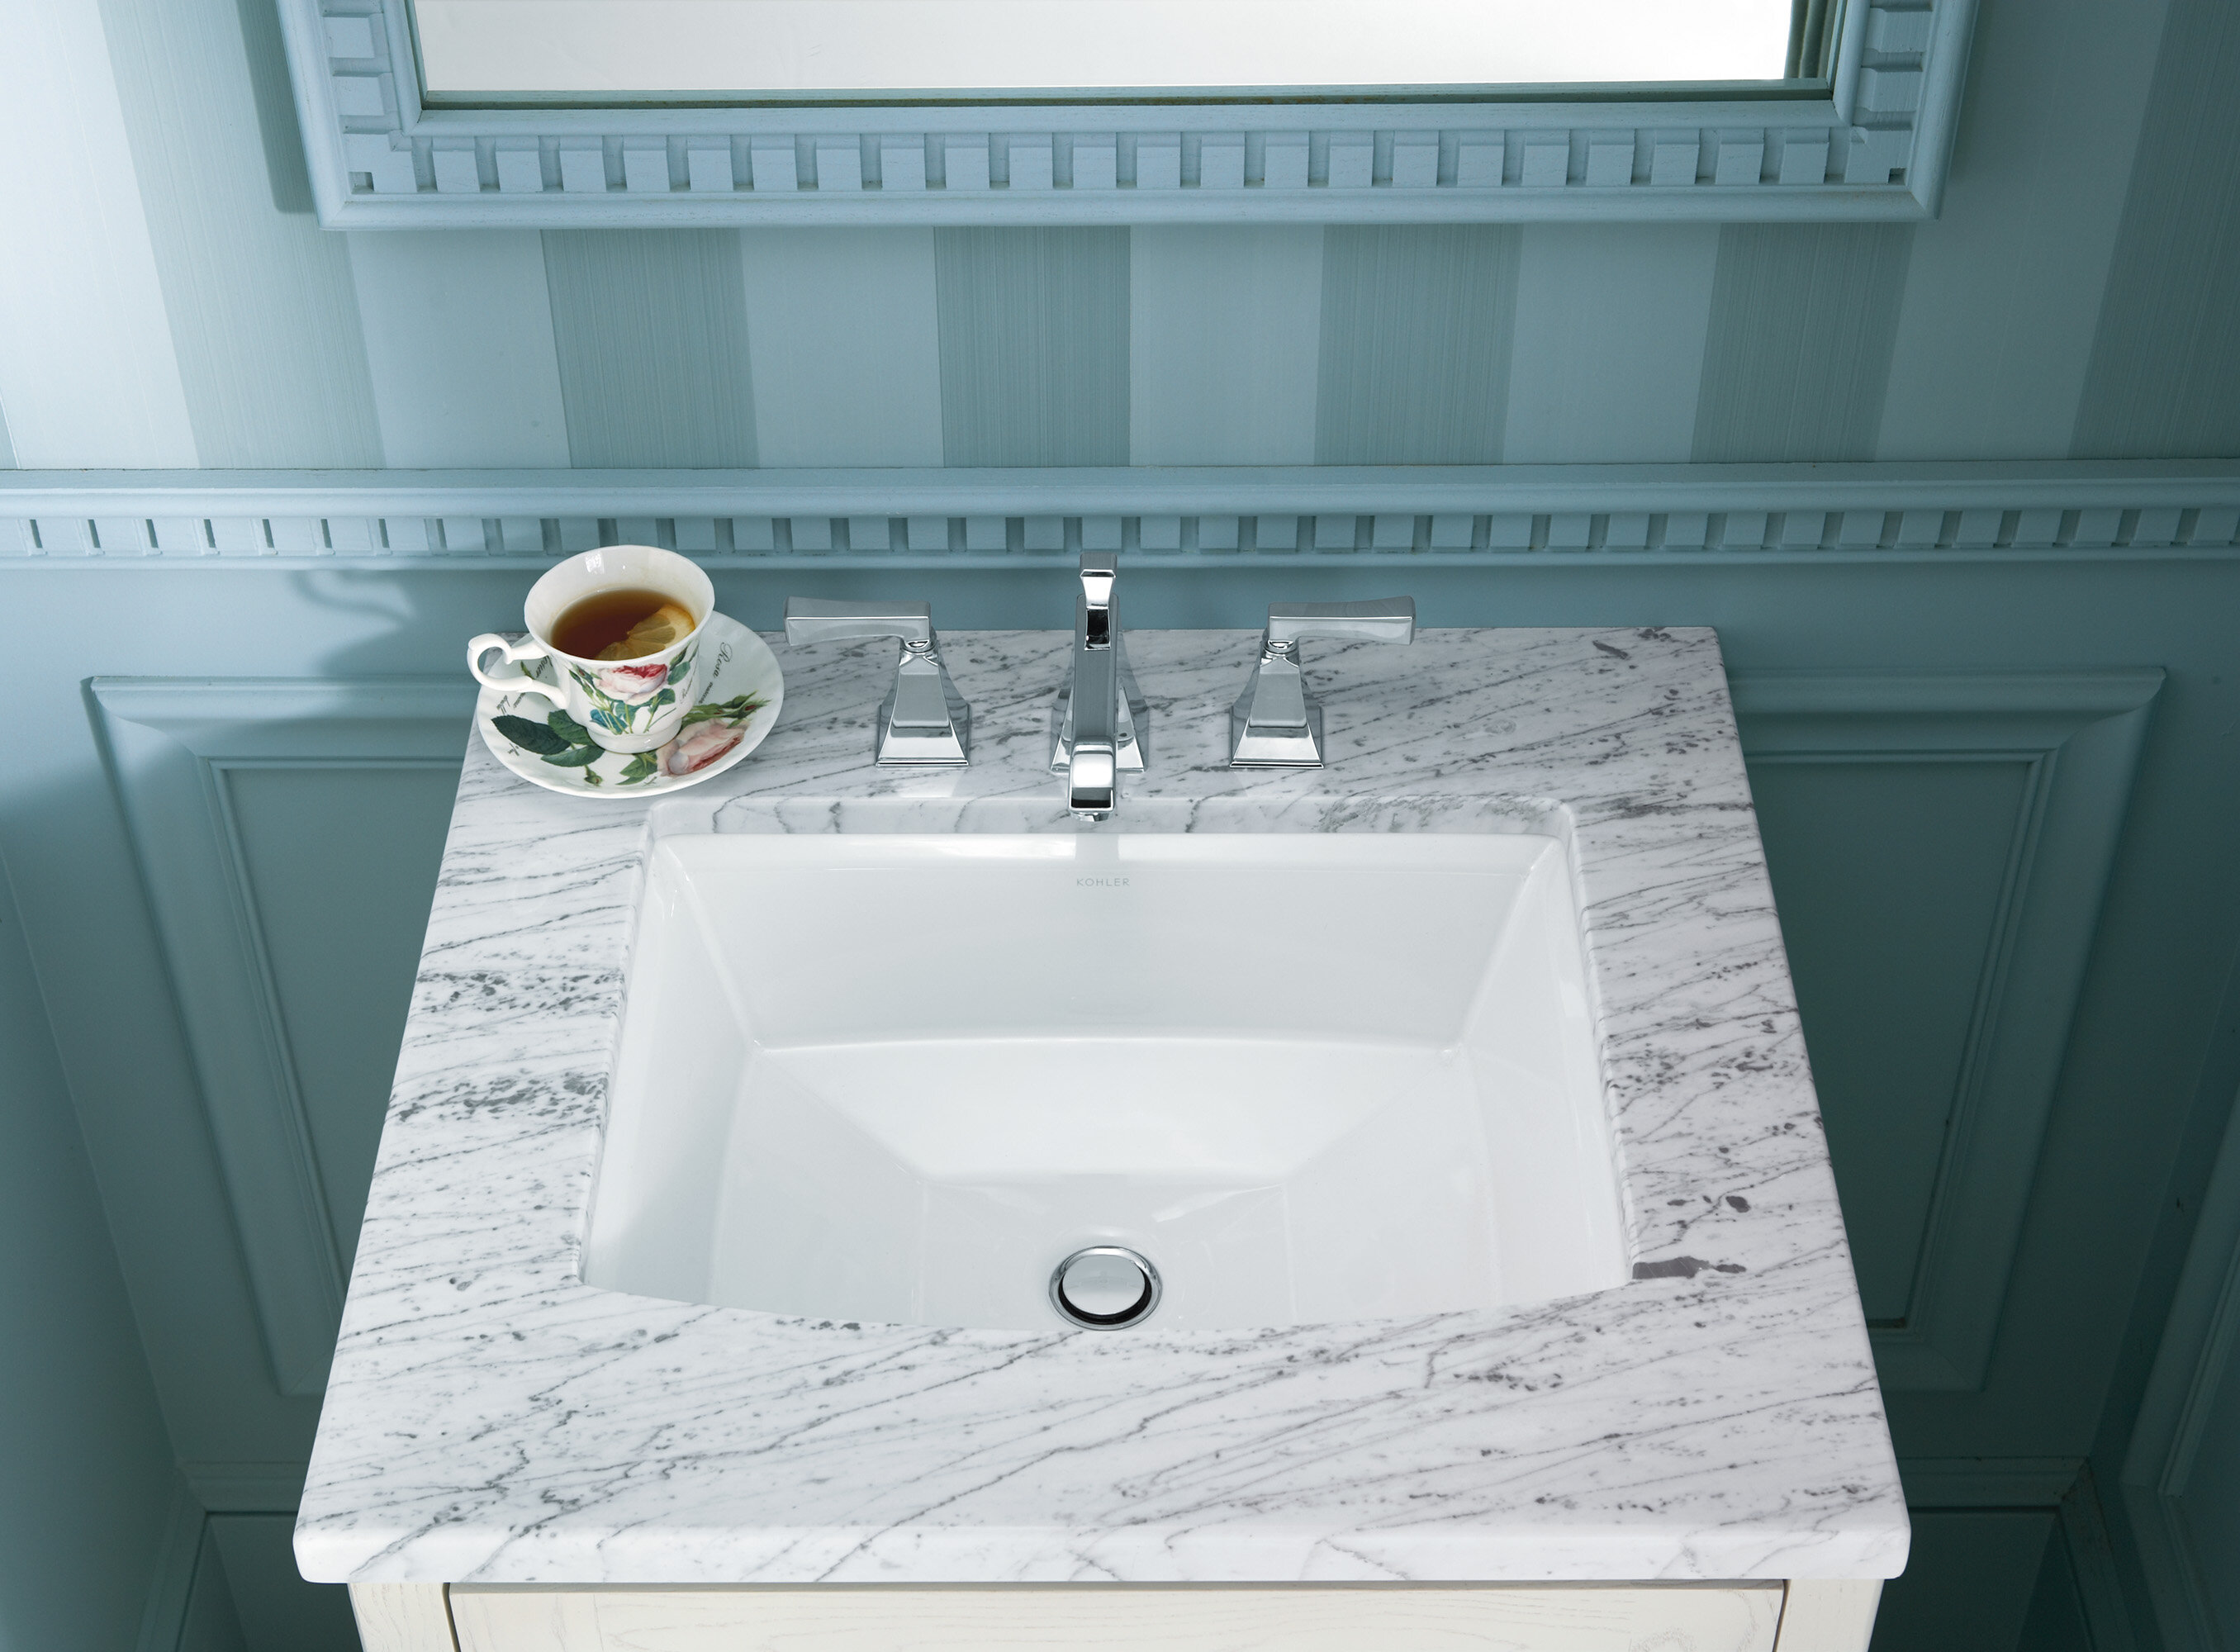 K 2355 0 33 47 Kohler Archer Ceramic Rectangular Undermount Bathroom Sink With Overflow Reviews Wayfair